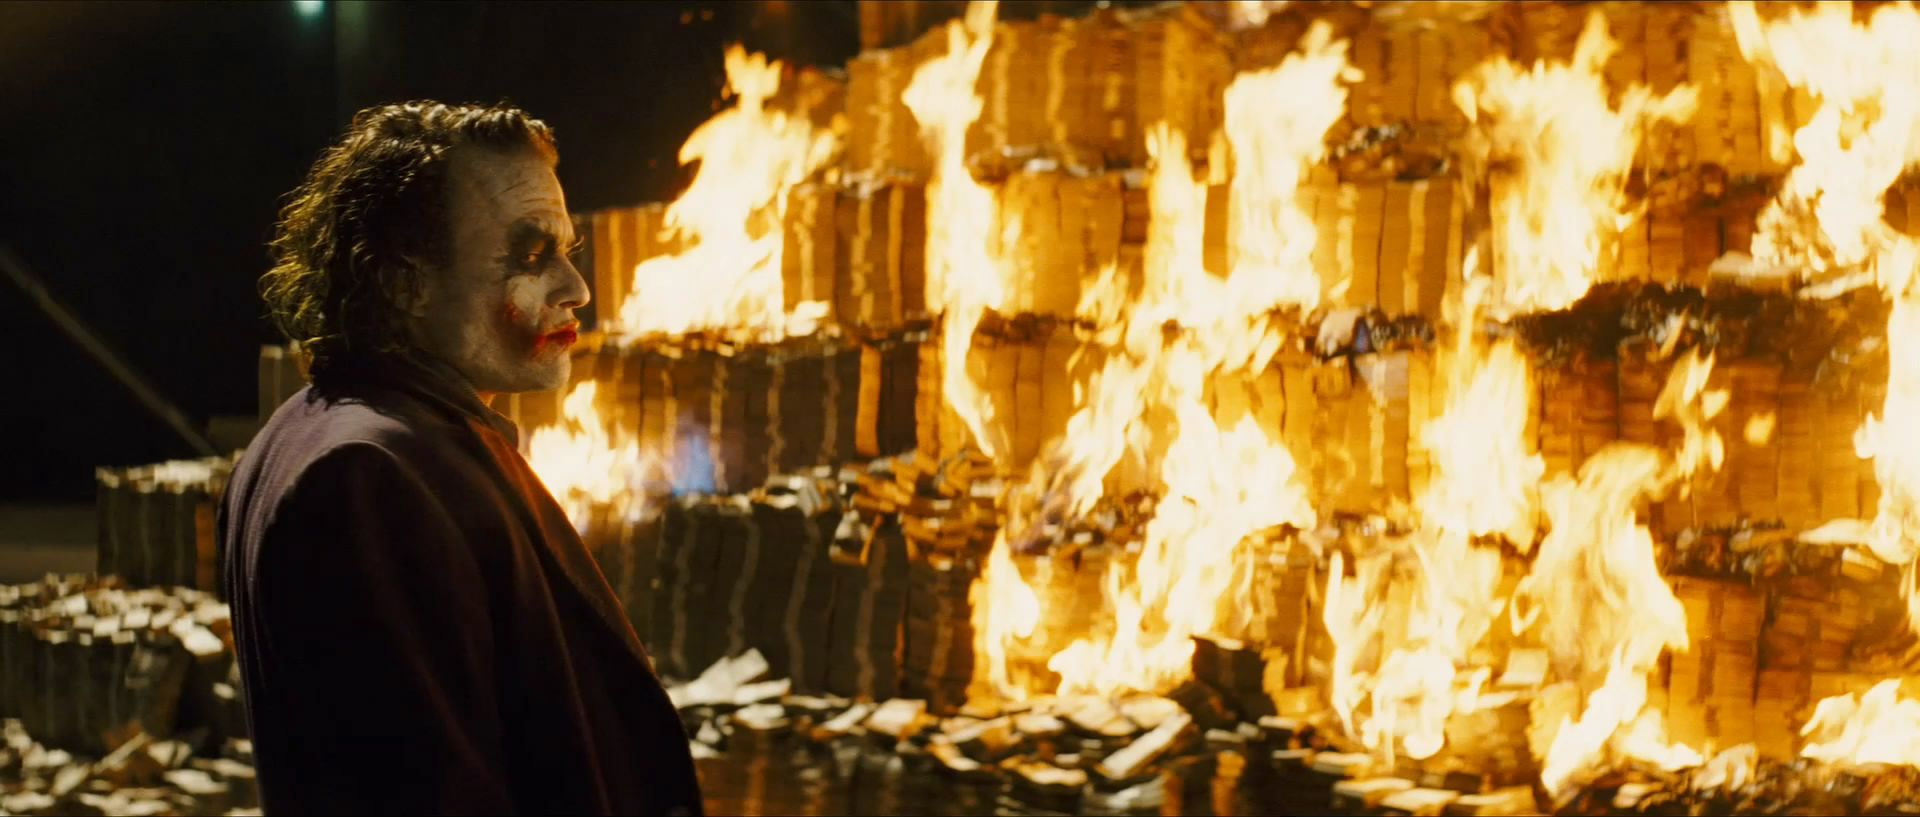 Thanks to the Internet, We Now Know How Much Money the Joker Burned in The  Dark Knight | Joker dark knight, Heath ledger joker, Dark knight